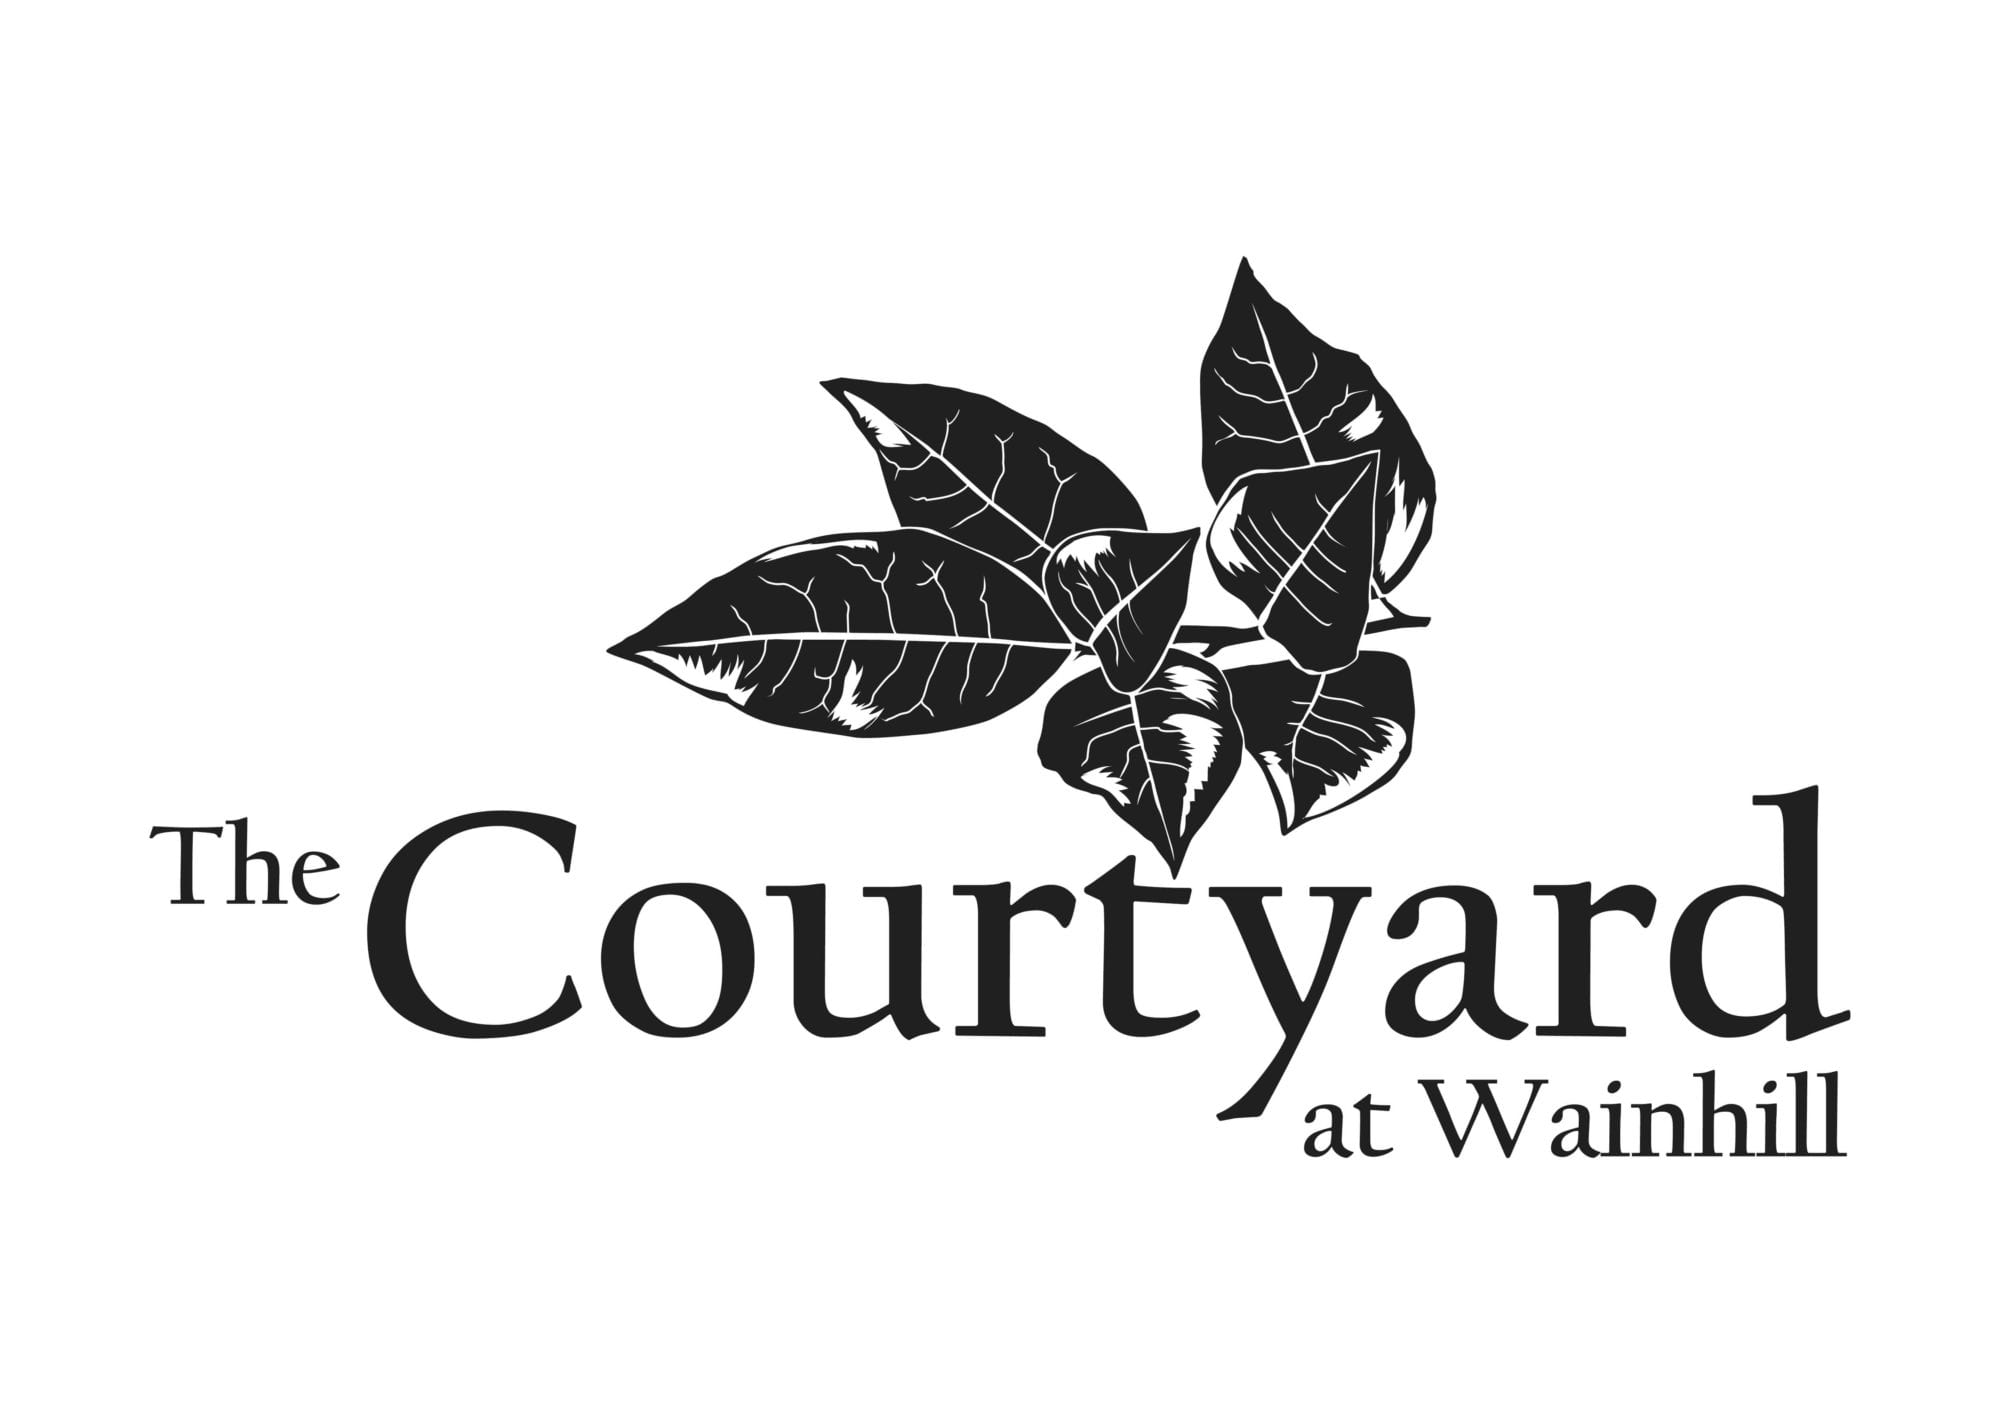 The Courtyard at Wainhill